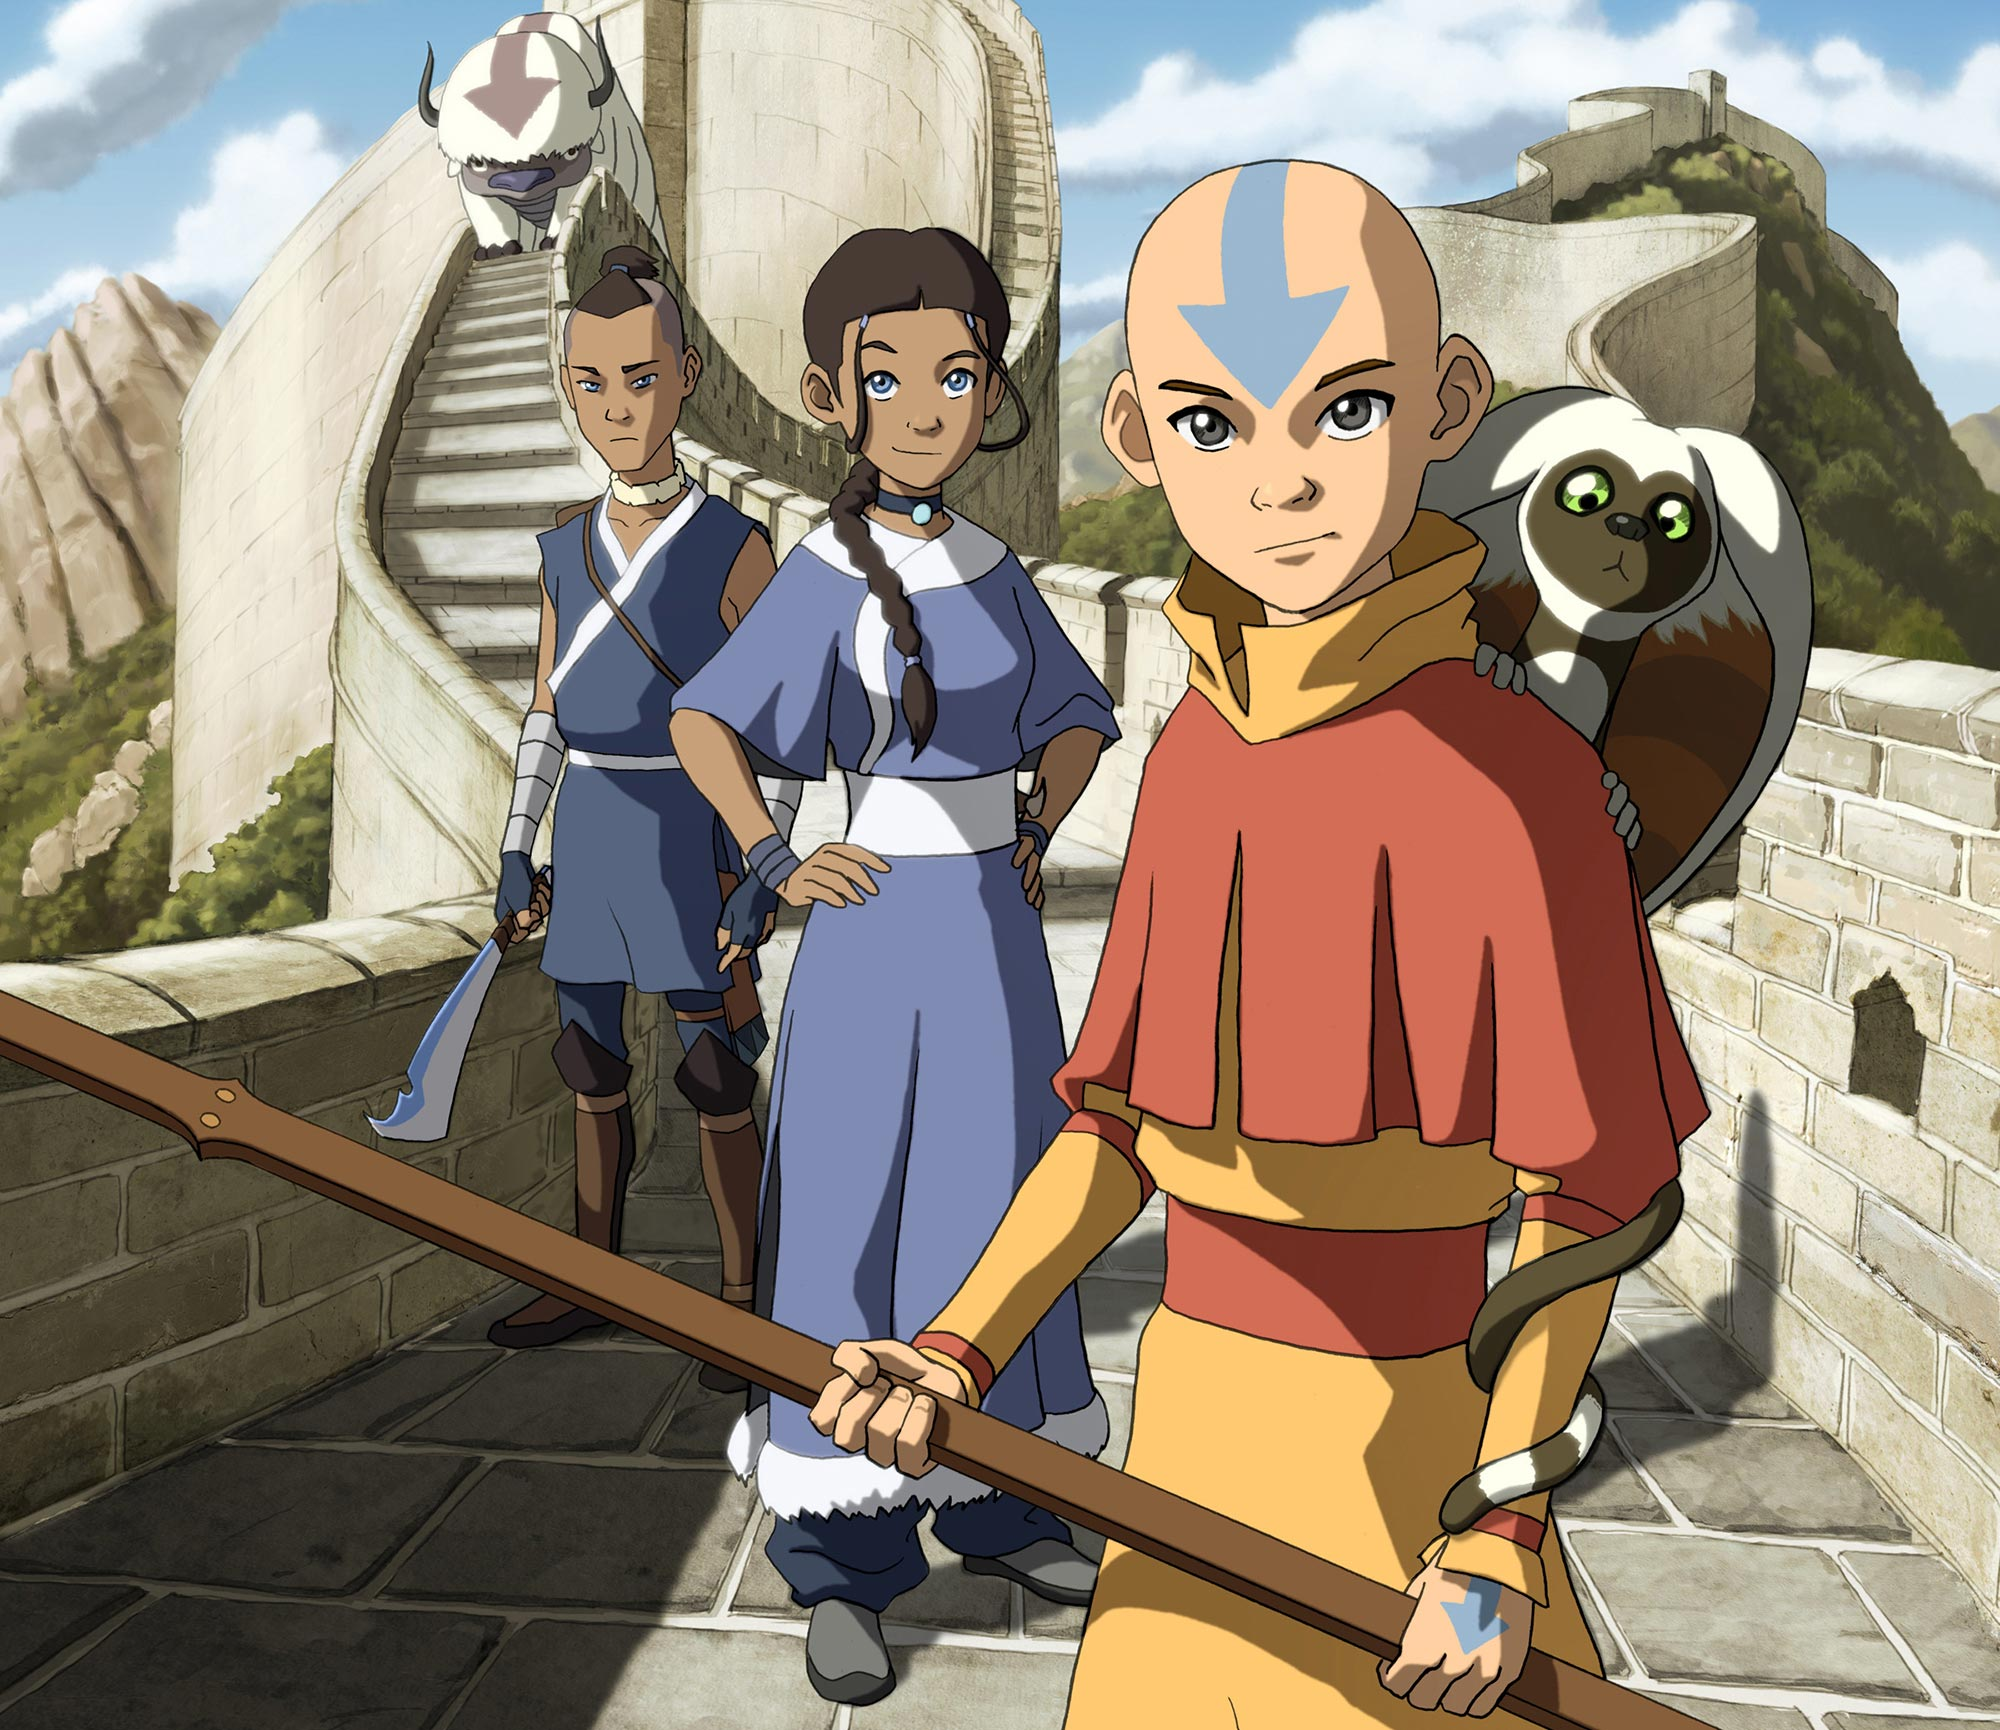 The 15 best episodes of Avatar: The Last Airbender